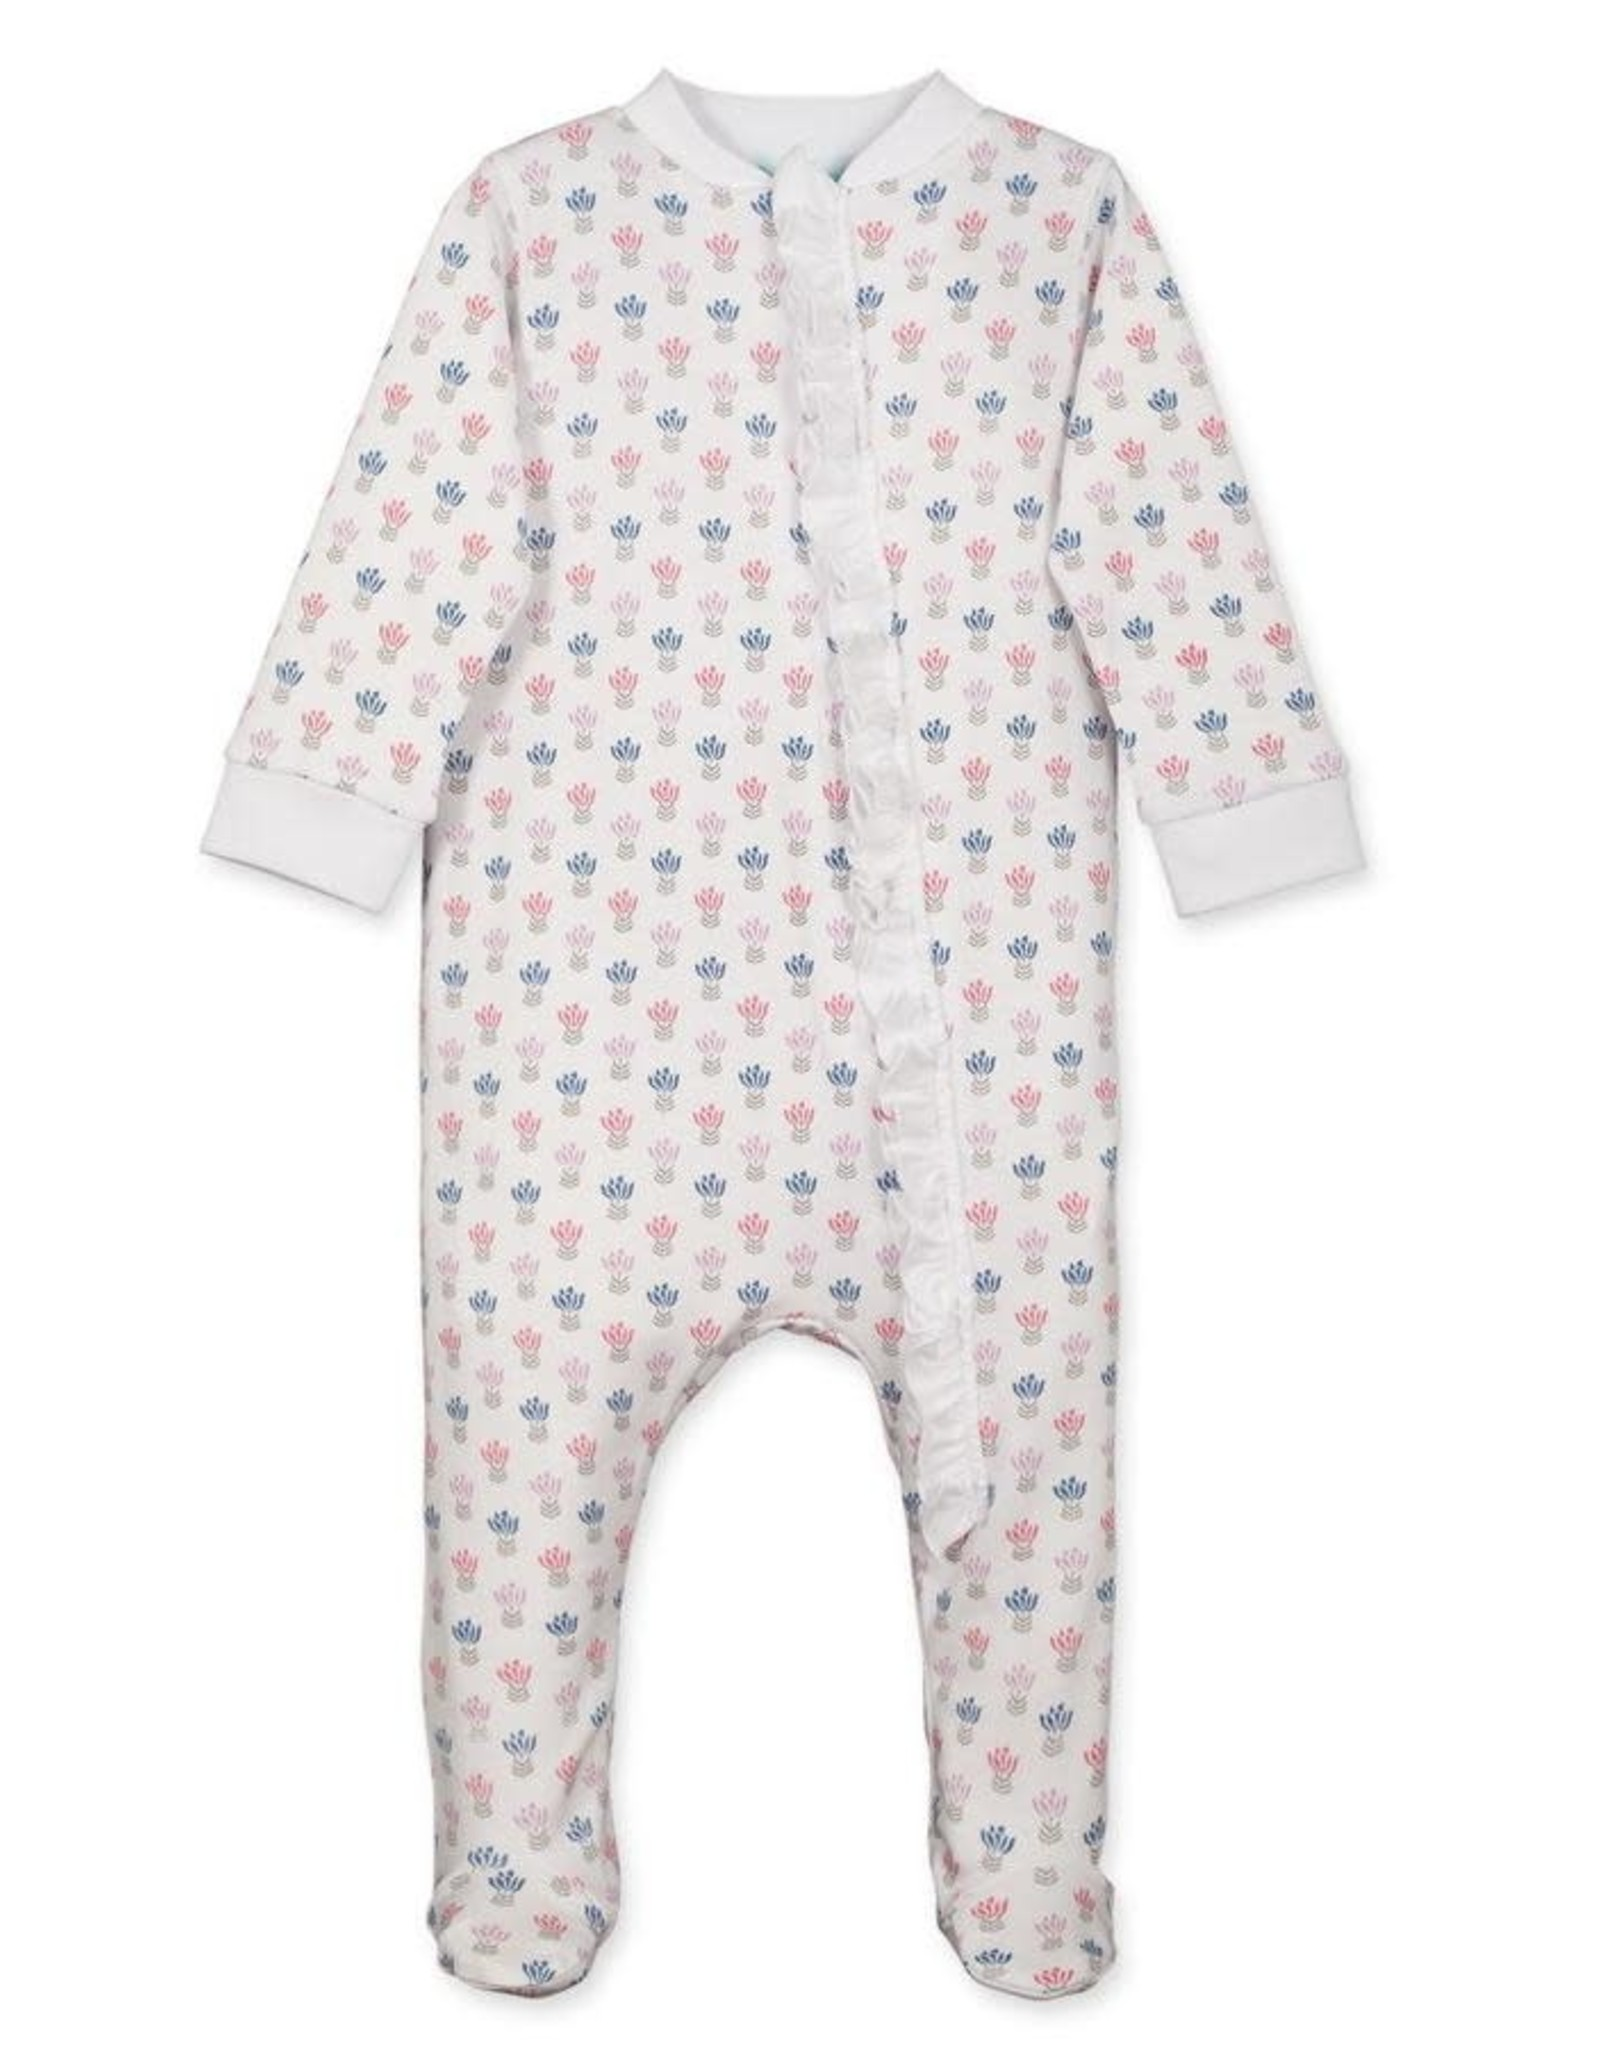 Feather Baby Zipper Footie w/ Ruffle - Penelope Floral on White